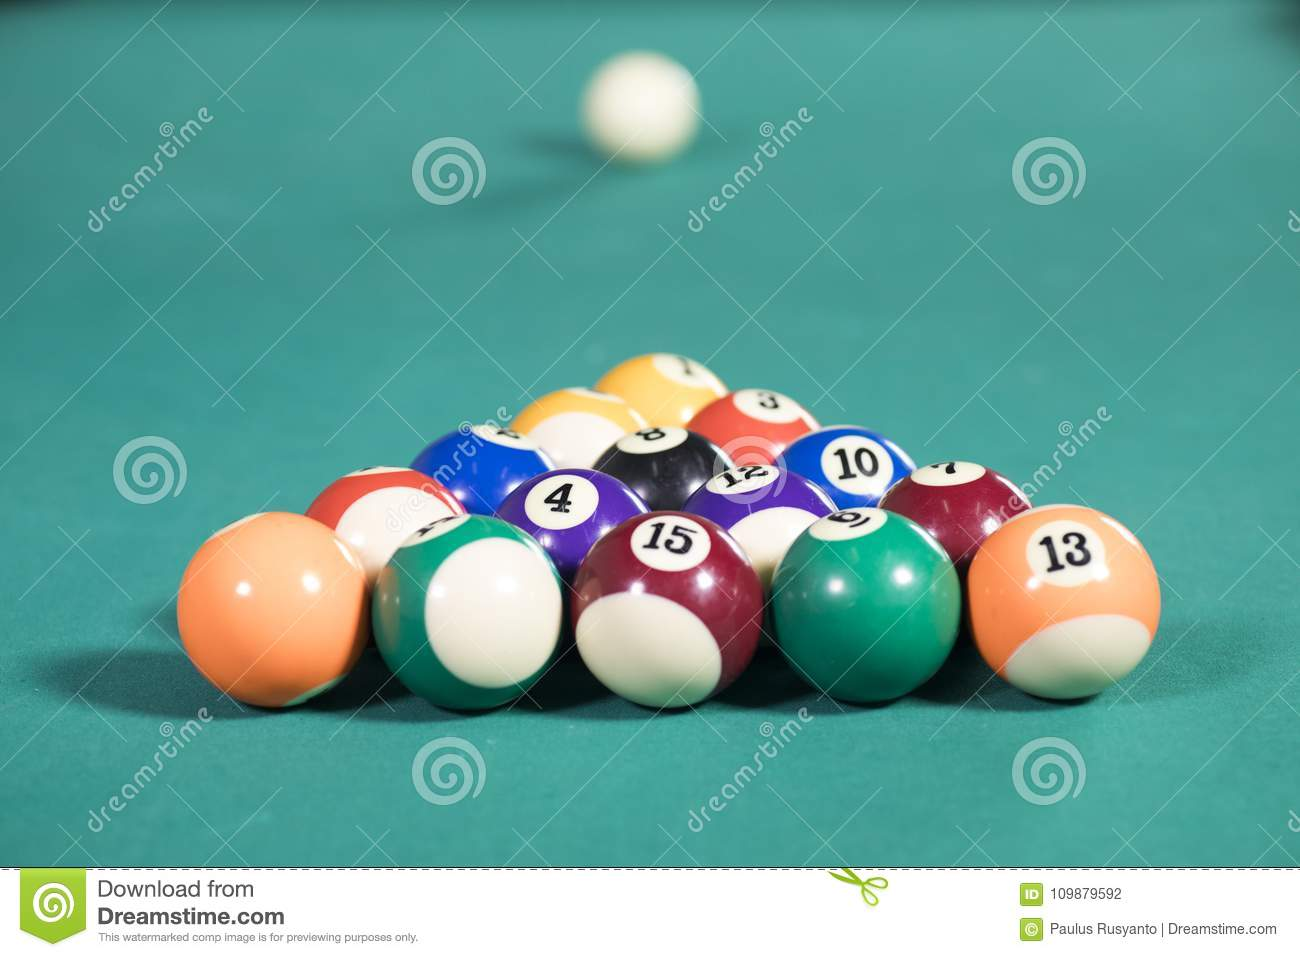 Fifteen Billiard Balls On The Pool Table Stock Photo Image Of Game - Games to play on a pool table